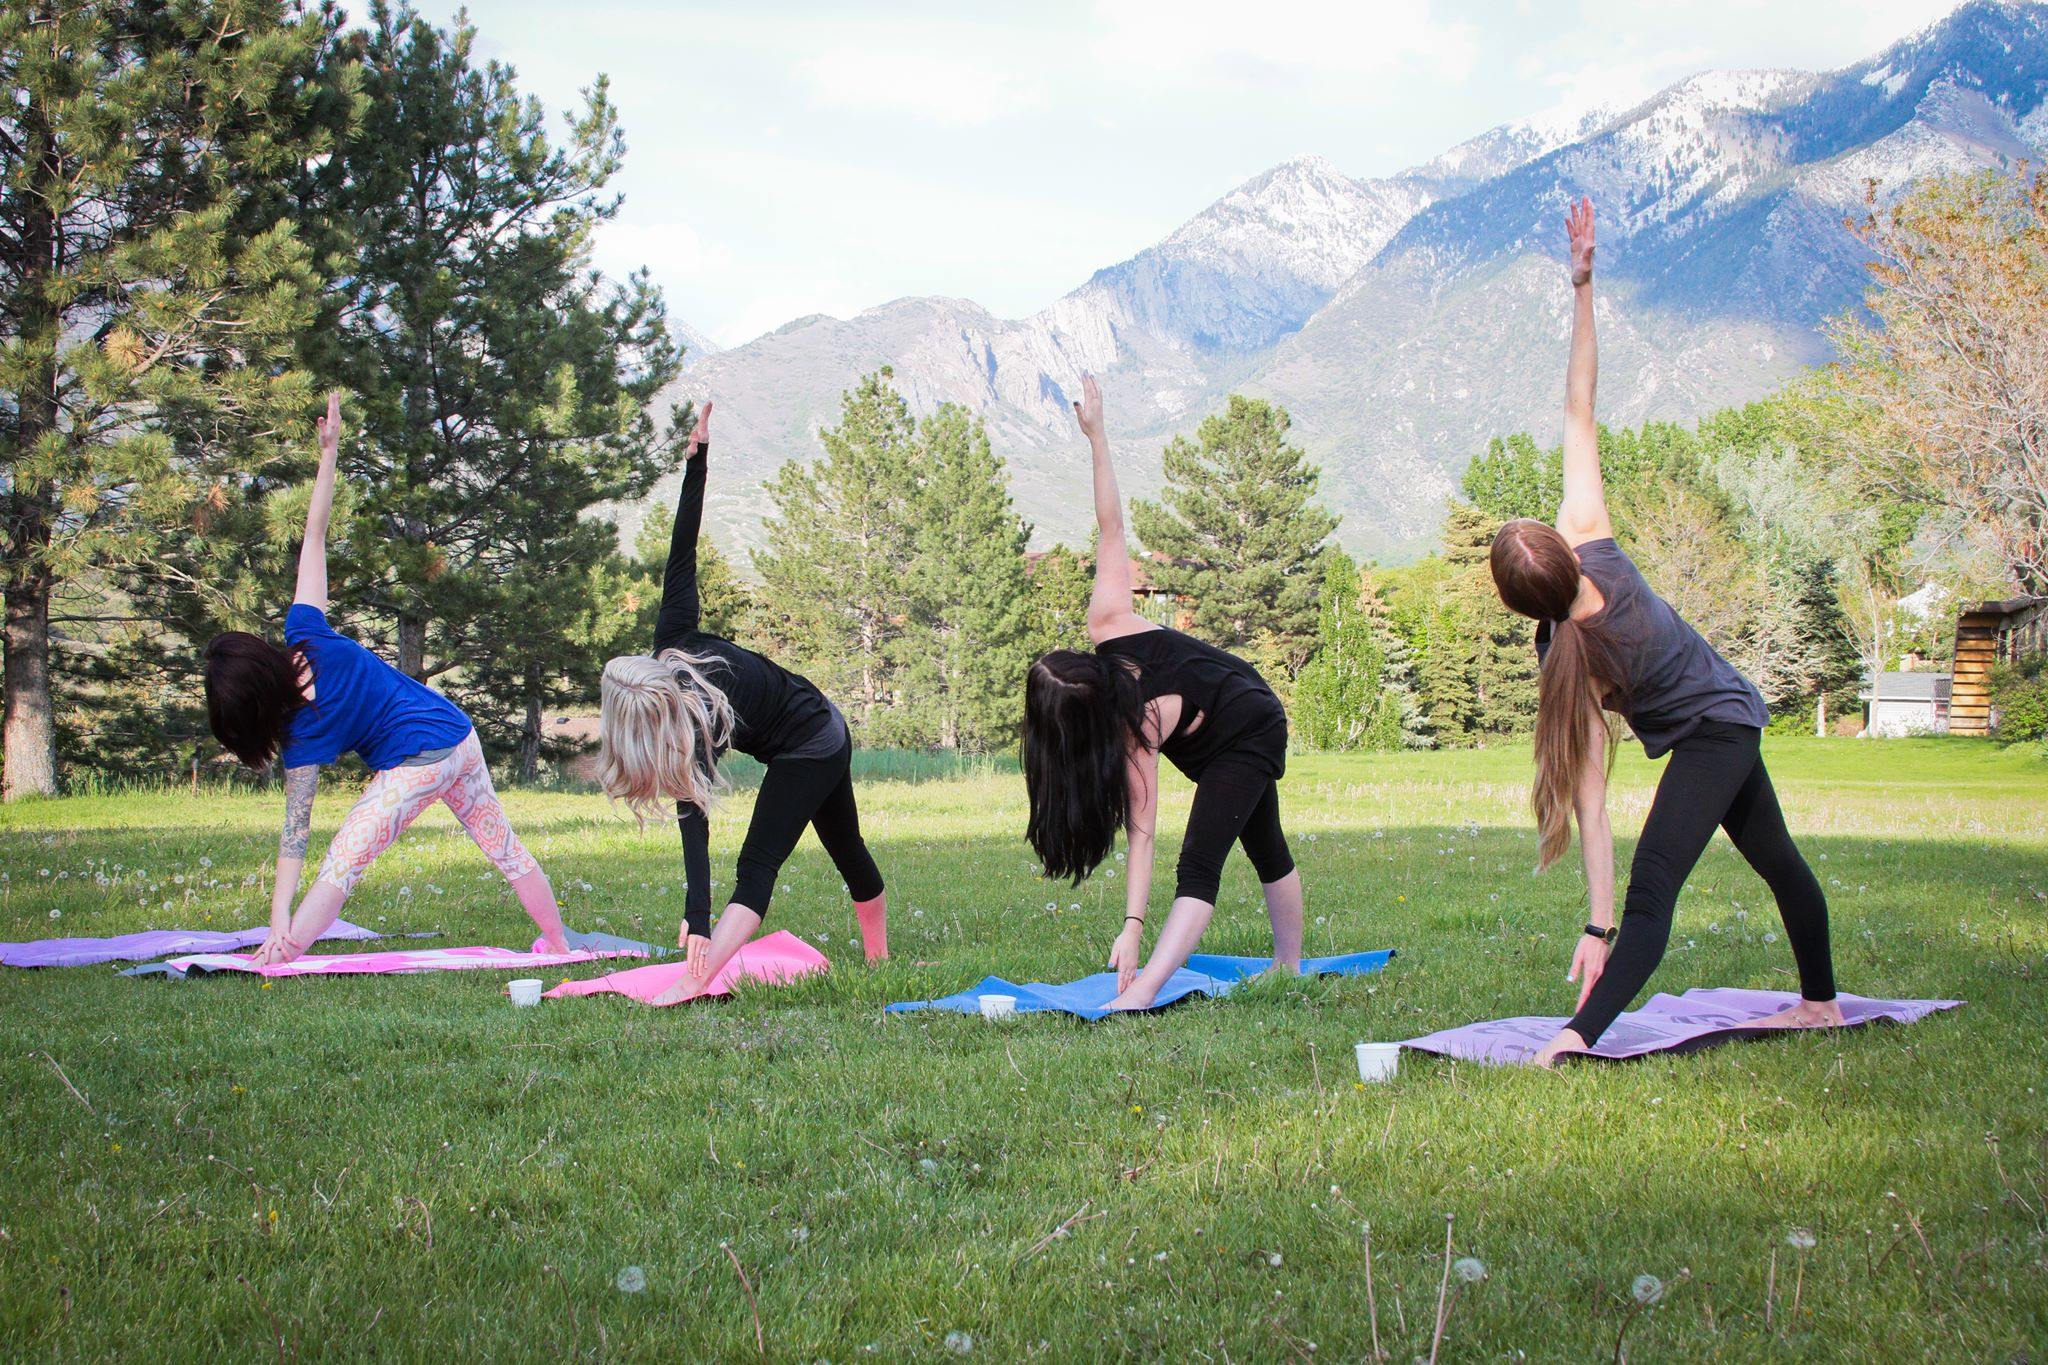 Mountain Cabin Retreat - Enjoy MINDFULNESS TRAINING, meditation, yoga & teambuilding in an all-day or afternoon retreat that builds attendees up into their own experts on healthy living, growth mindset and leadership.